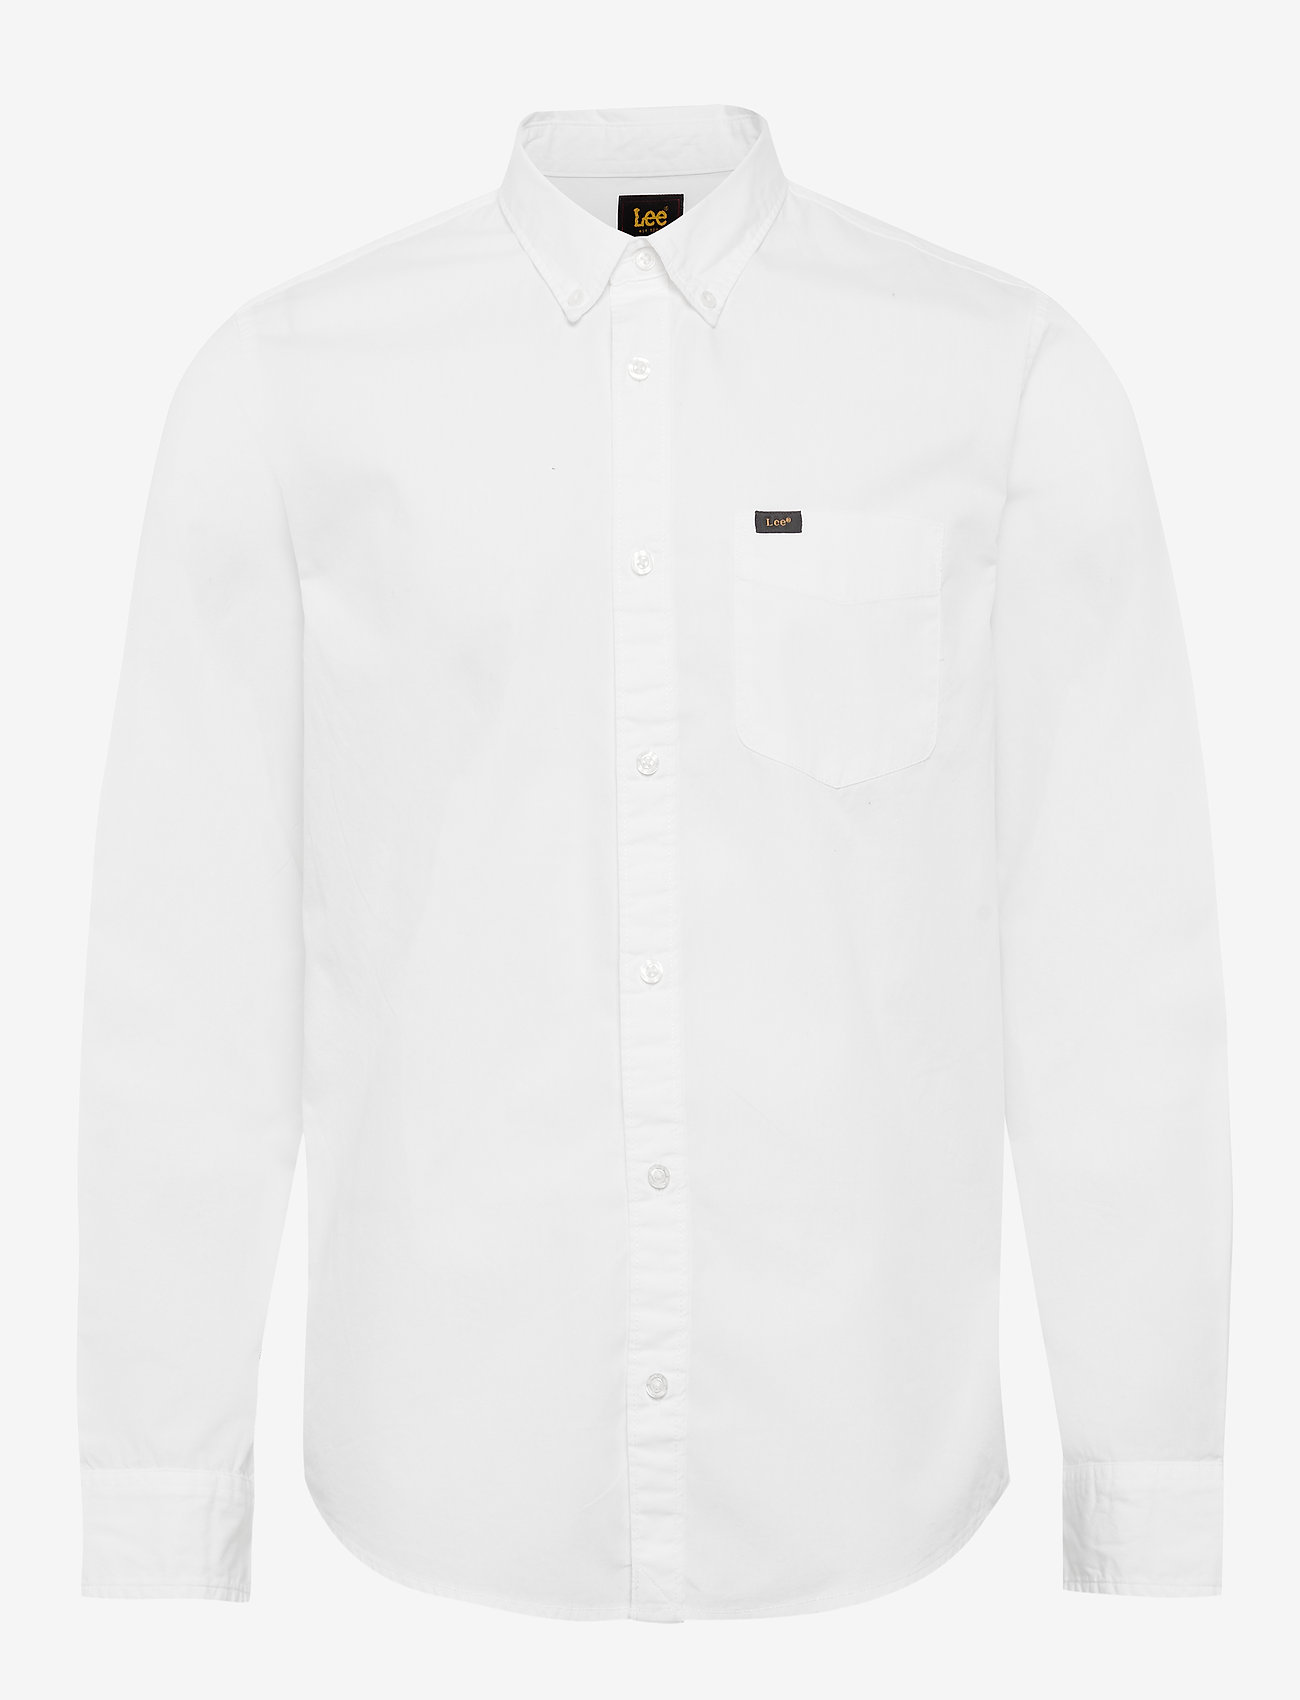 Lee Jeans - LEE BUTTON DOWN - denim shirts - white - 0